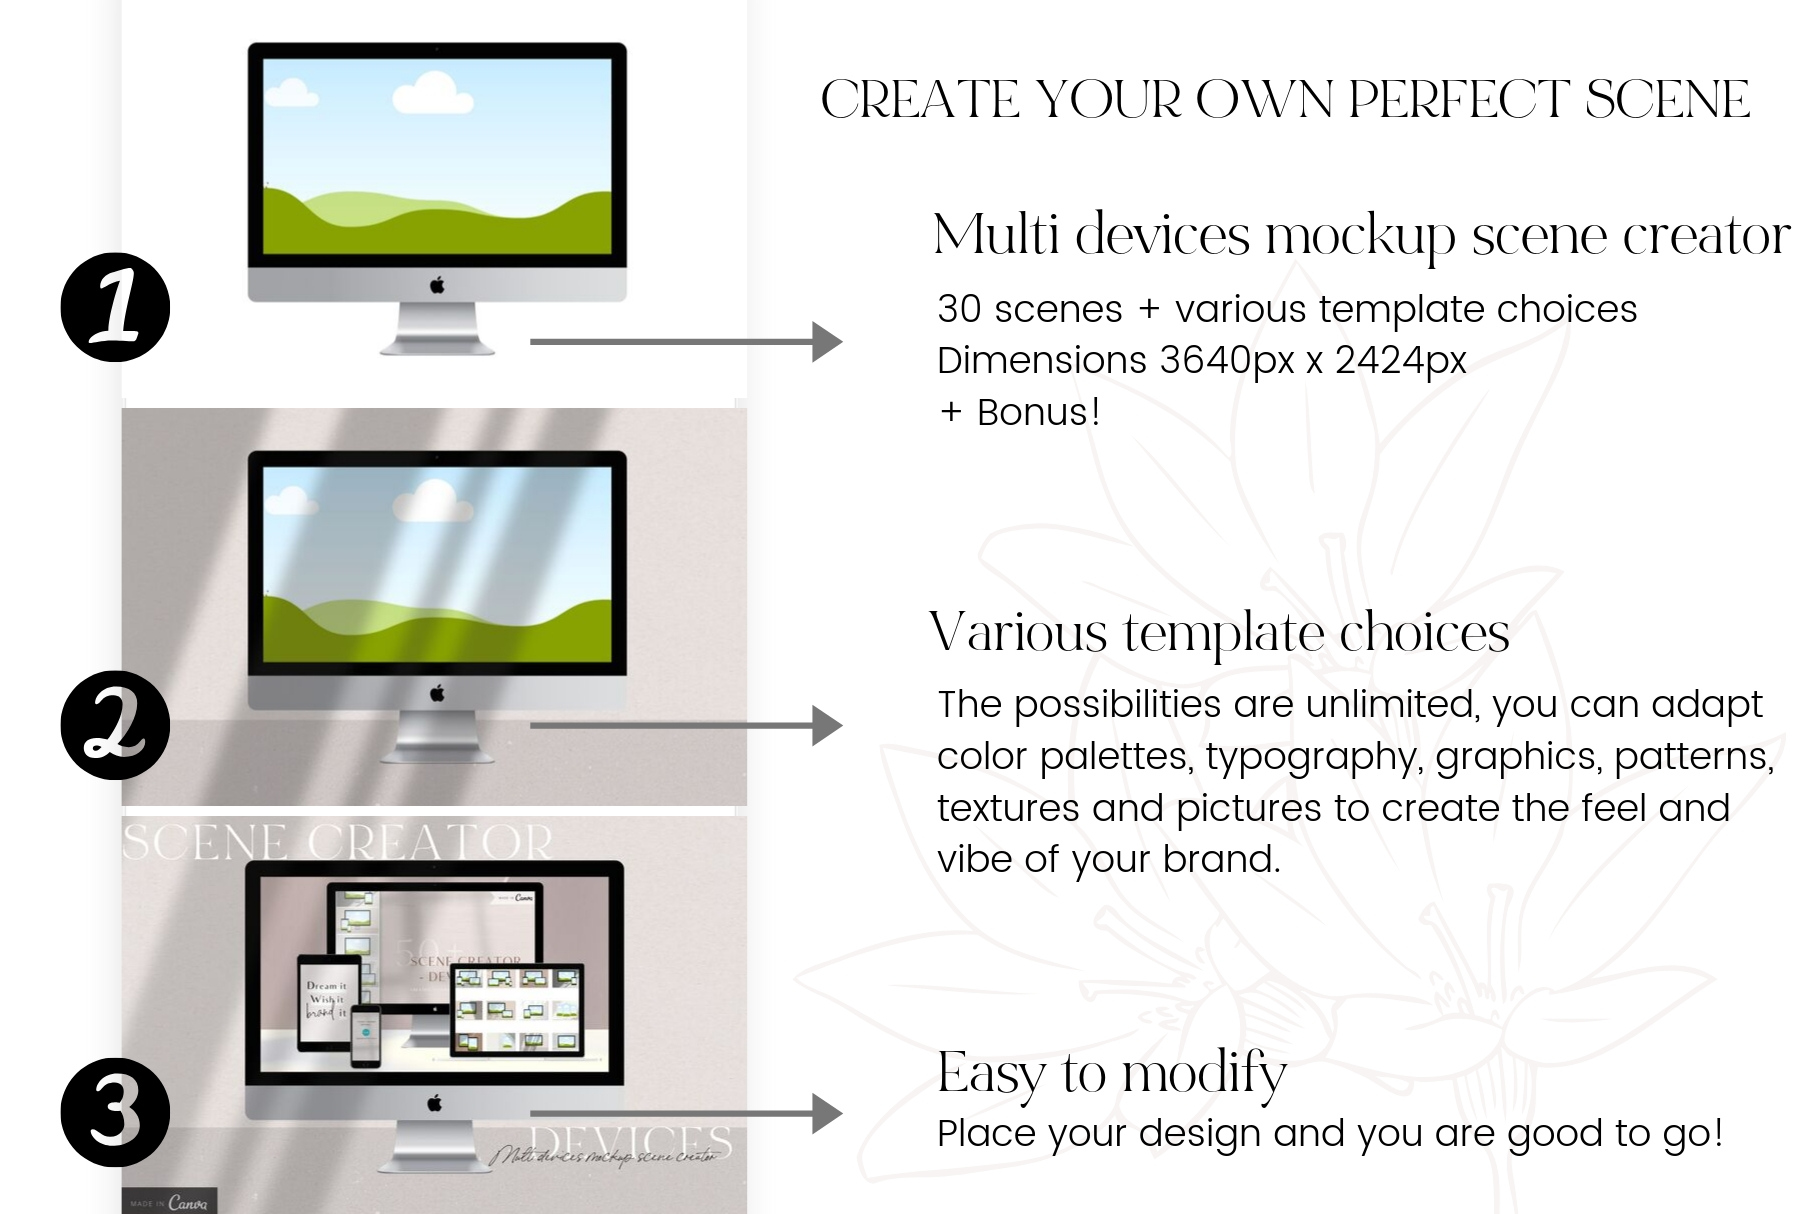 Canva Devices Mockup Scene Creator example image 5